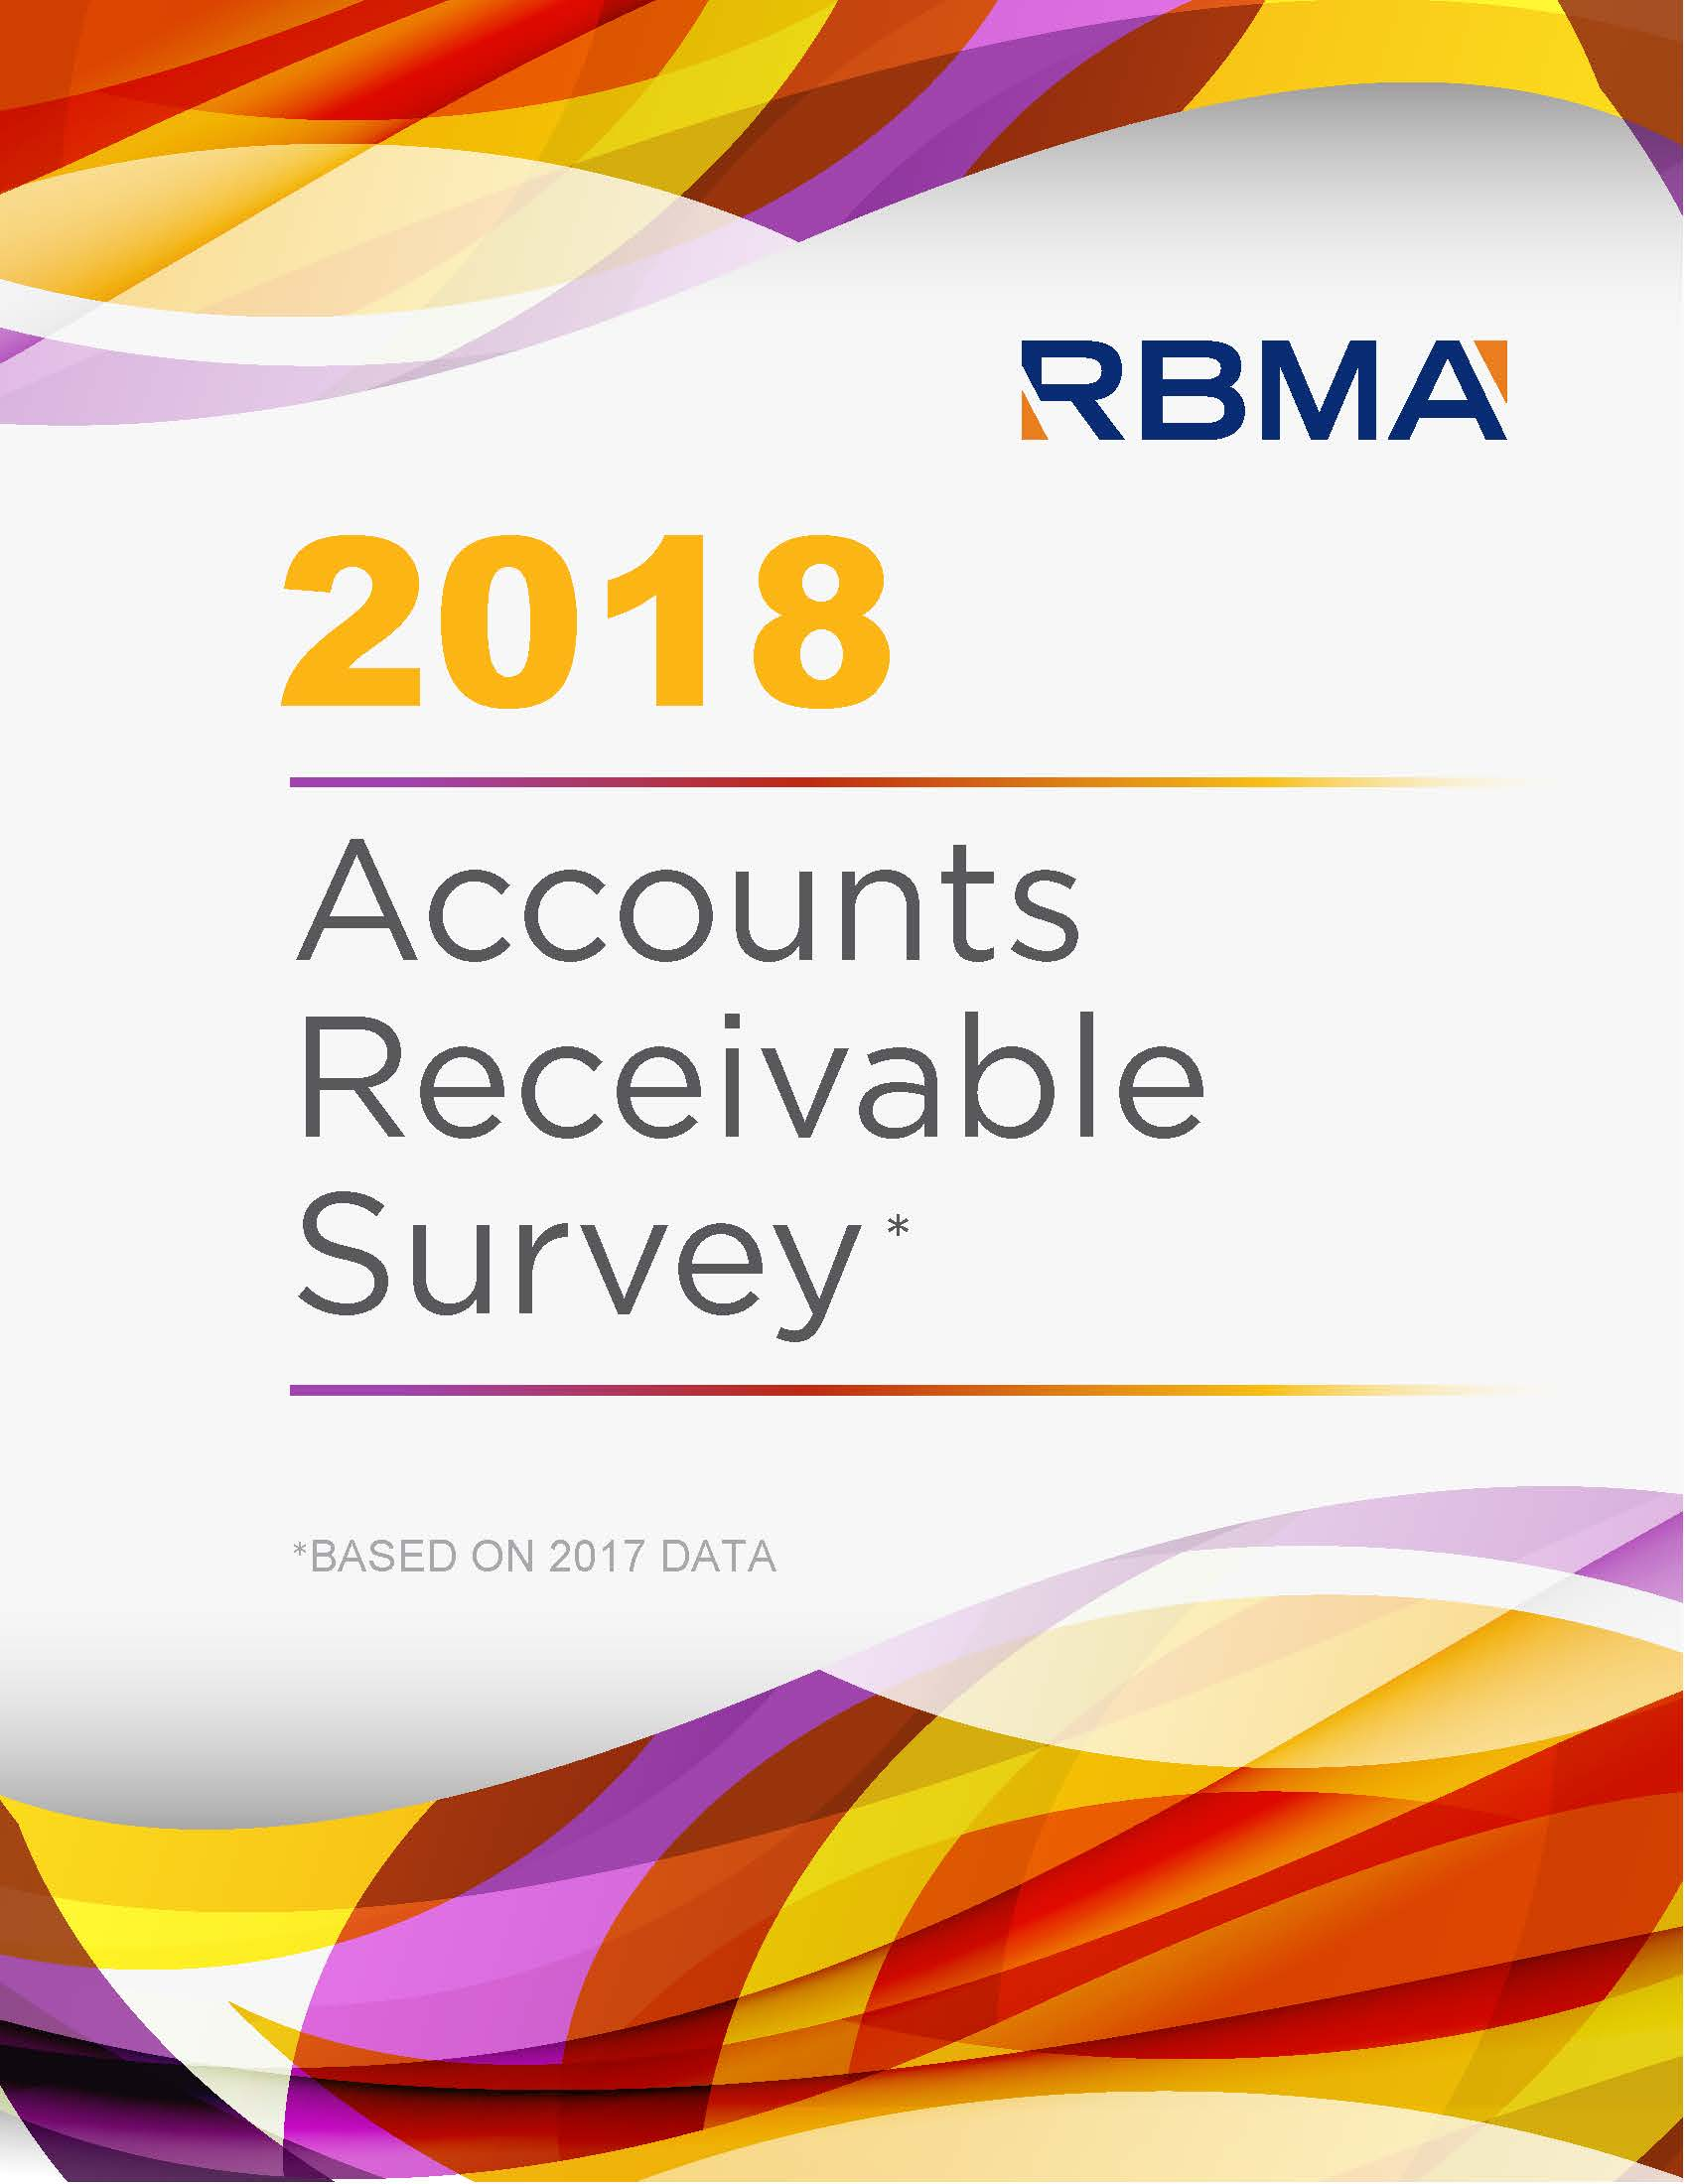 2018 Accounts Receivable Survey